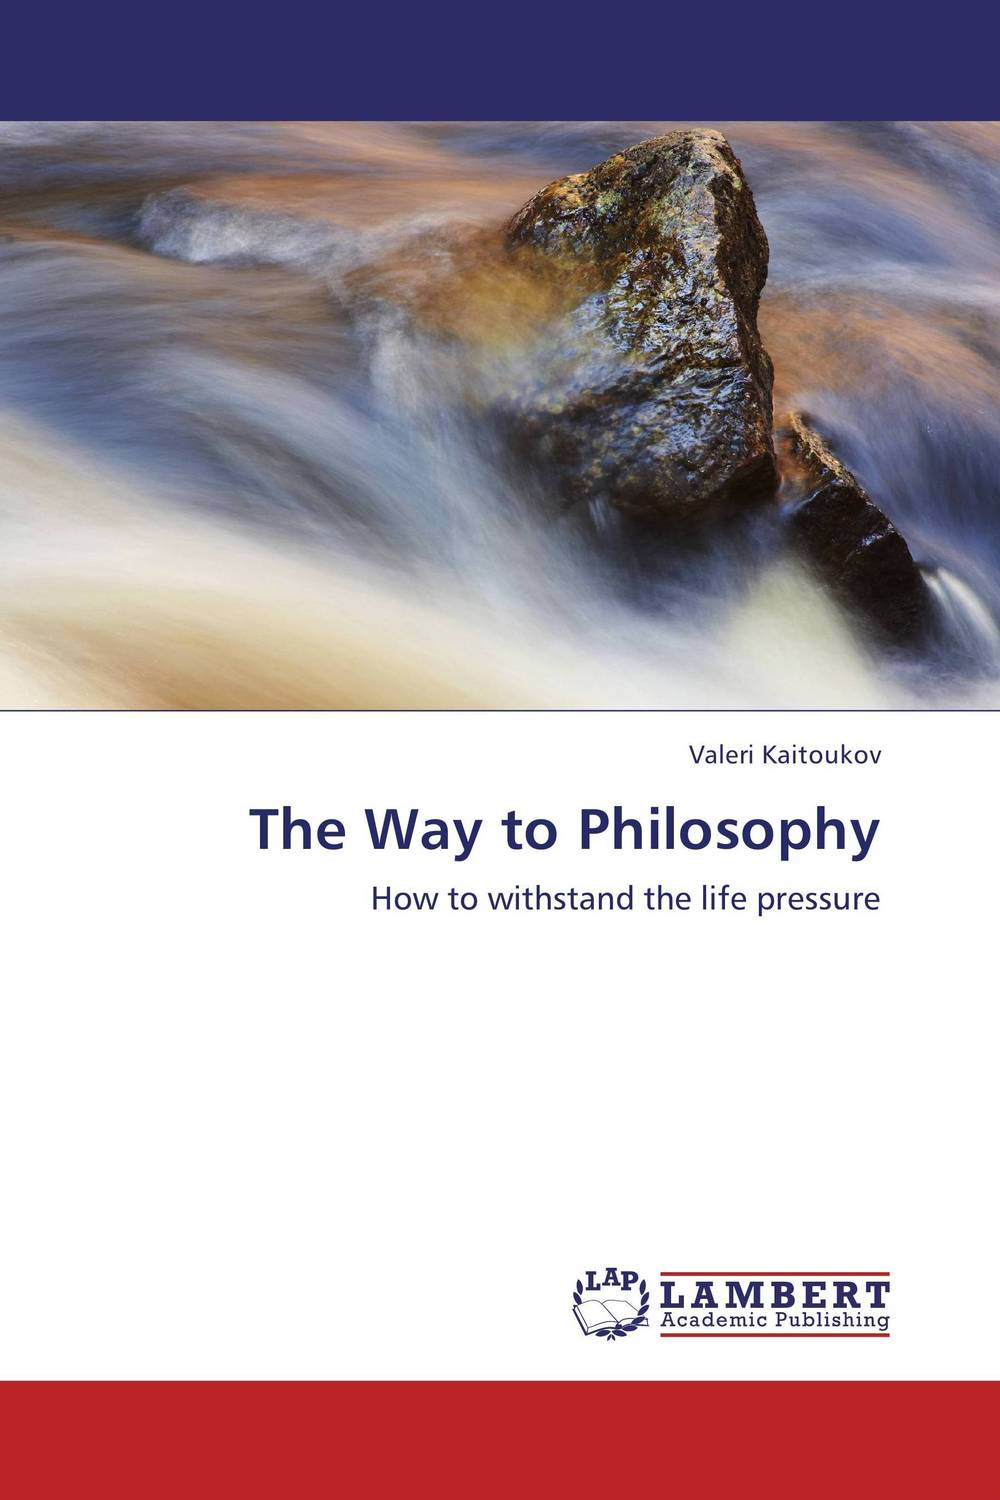 The Way to Philosophy